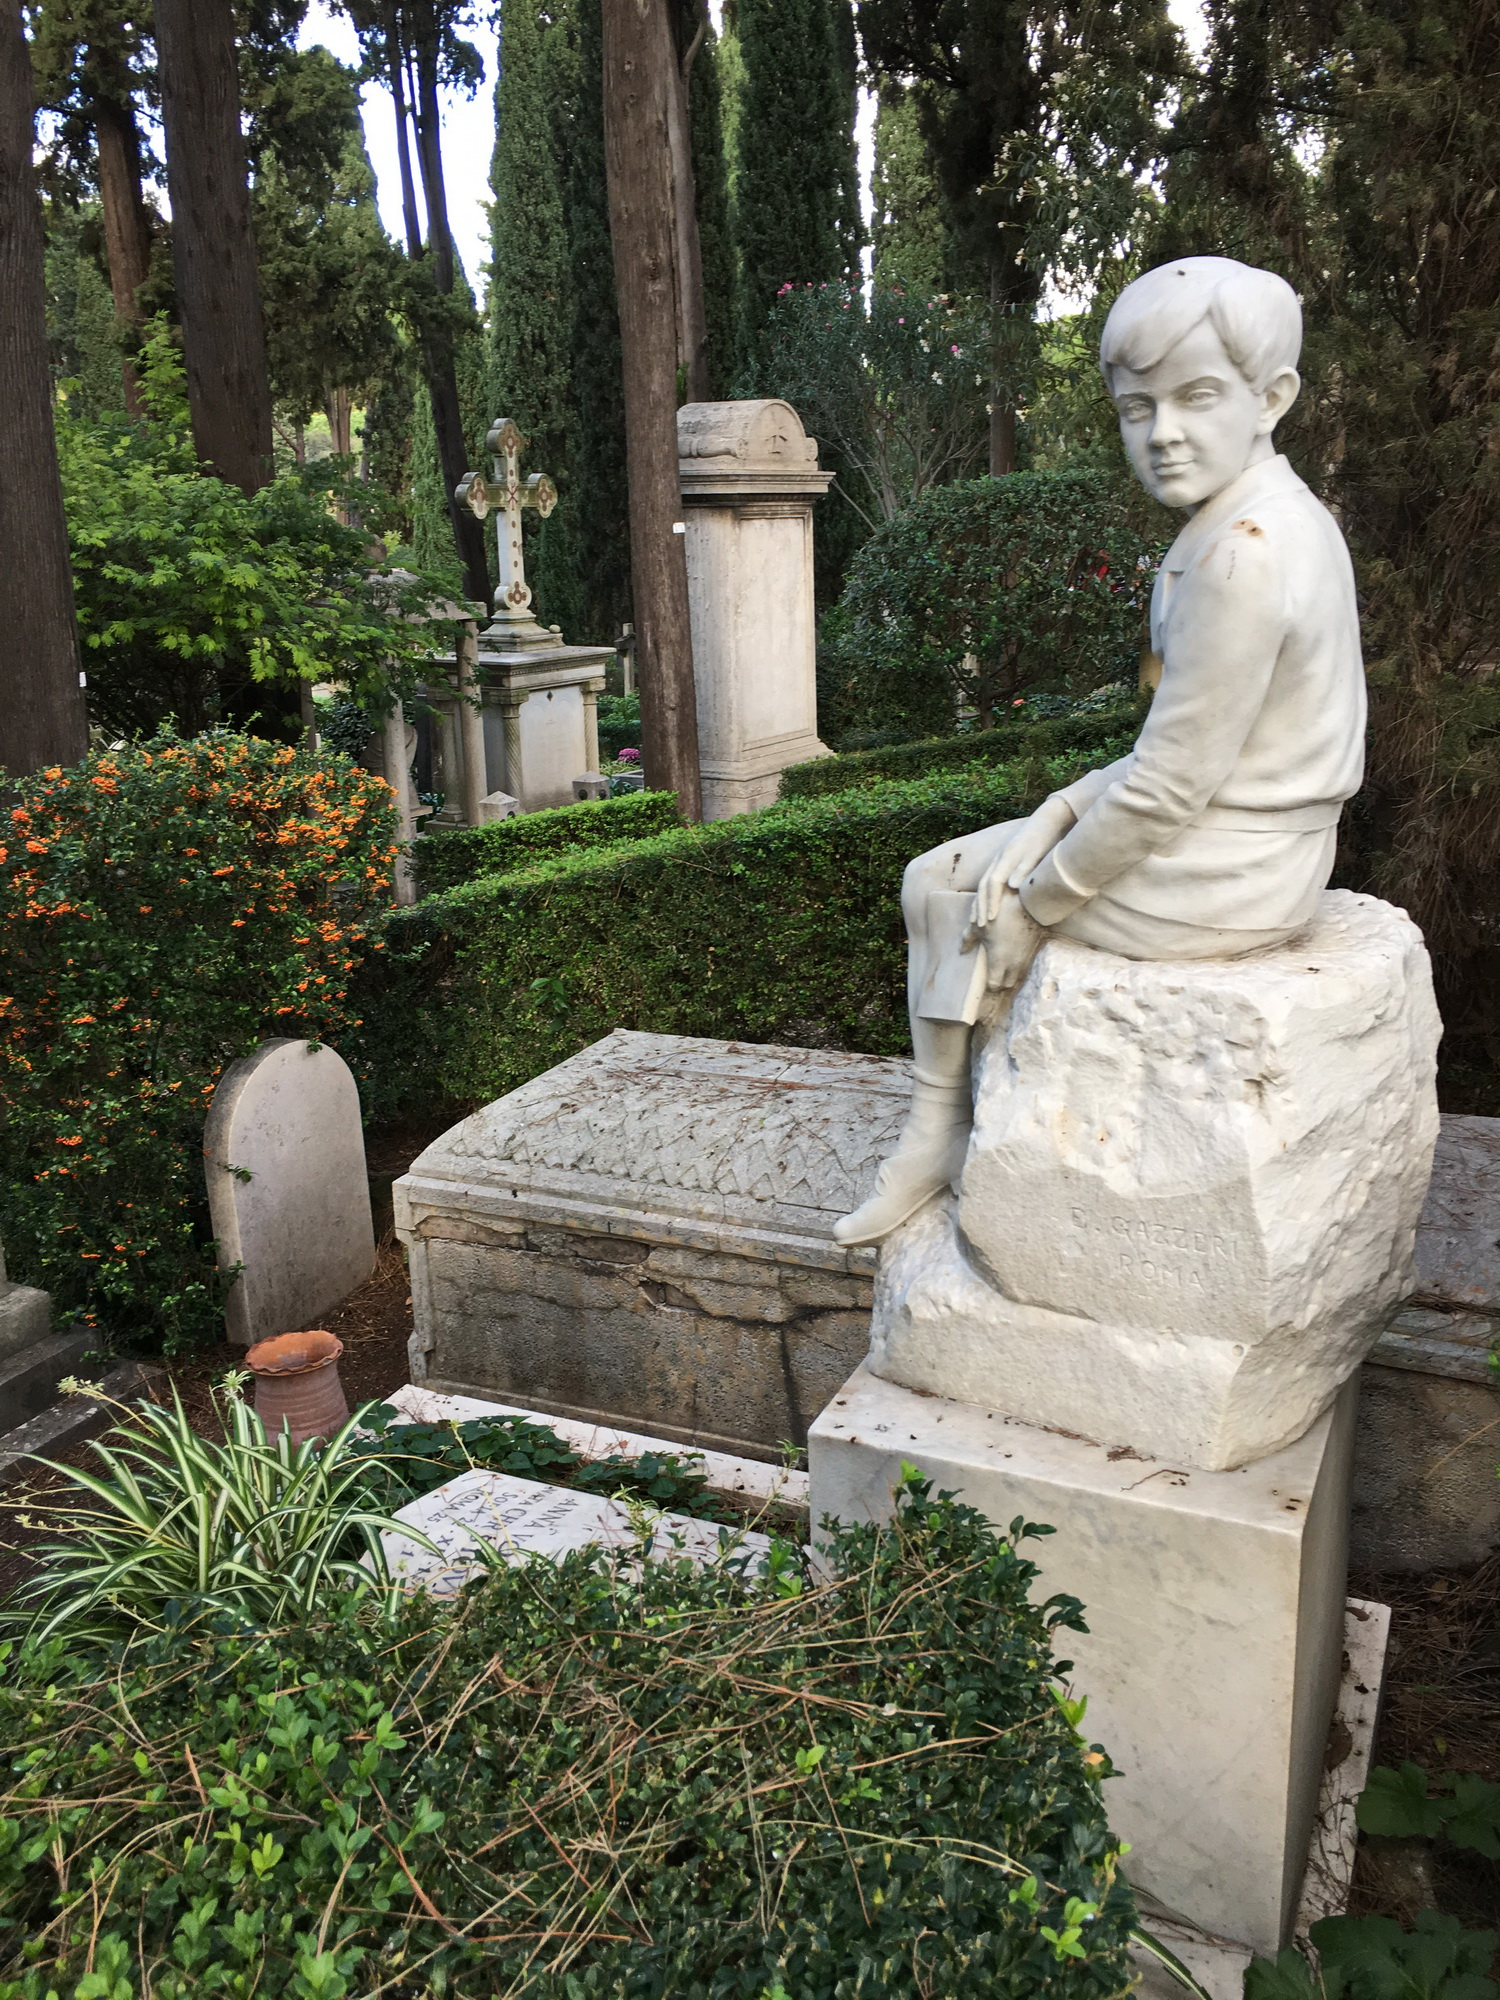 Boy sculpture in Rome's protestant cemetery